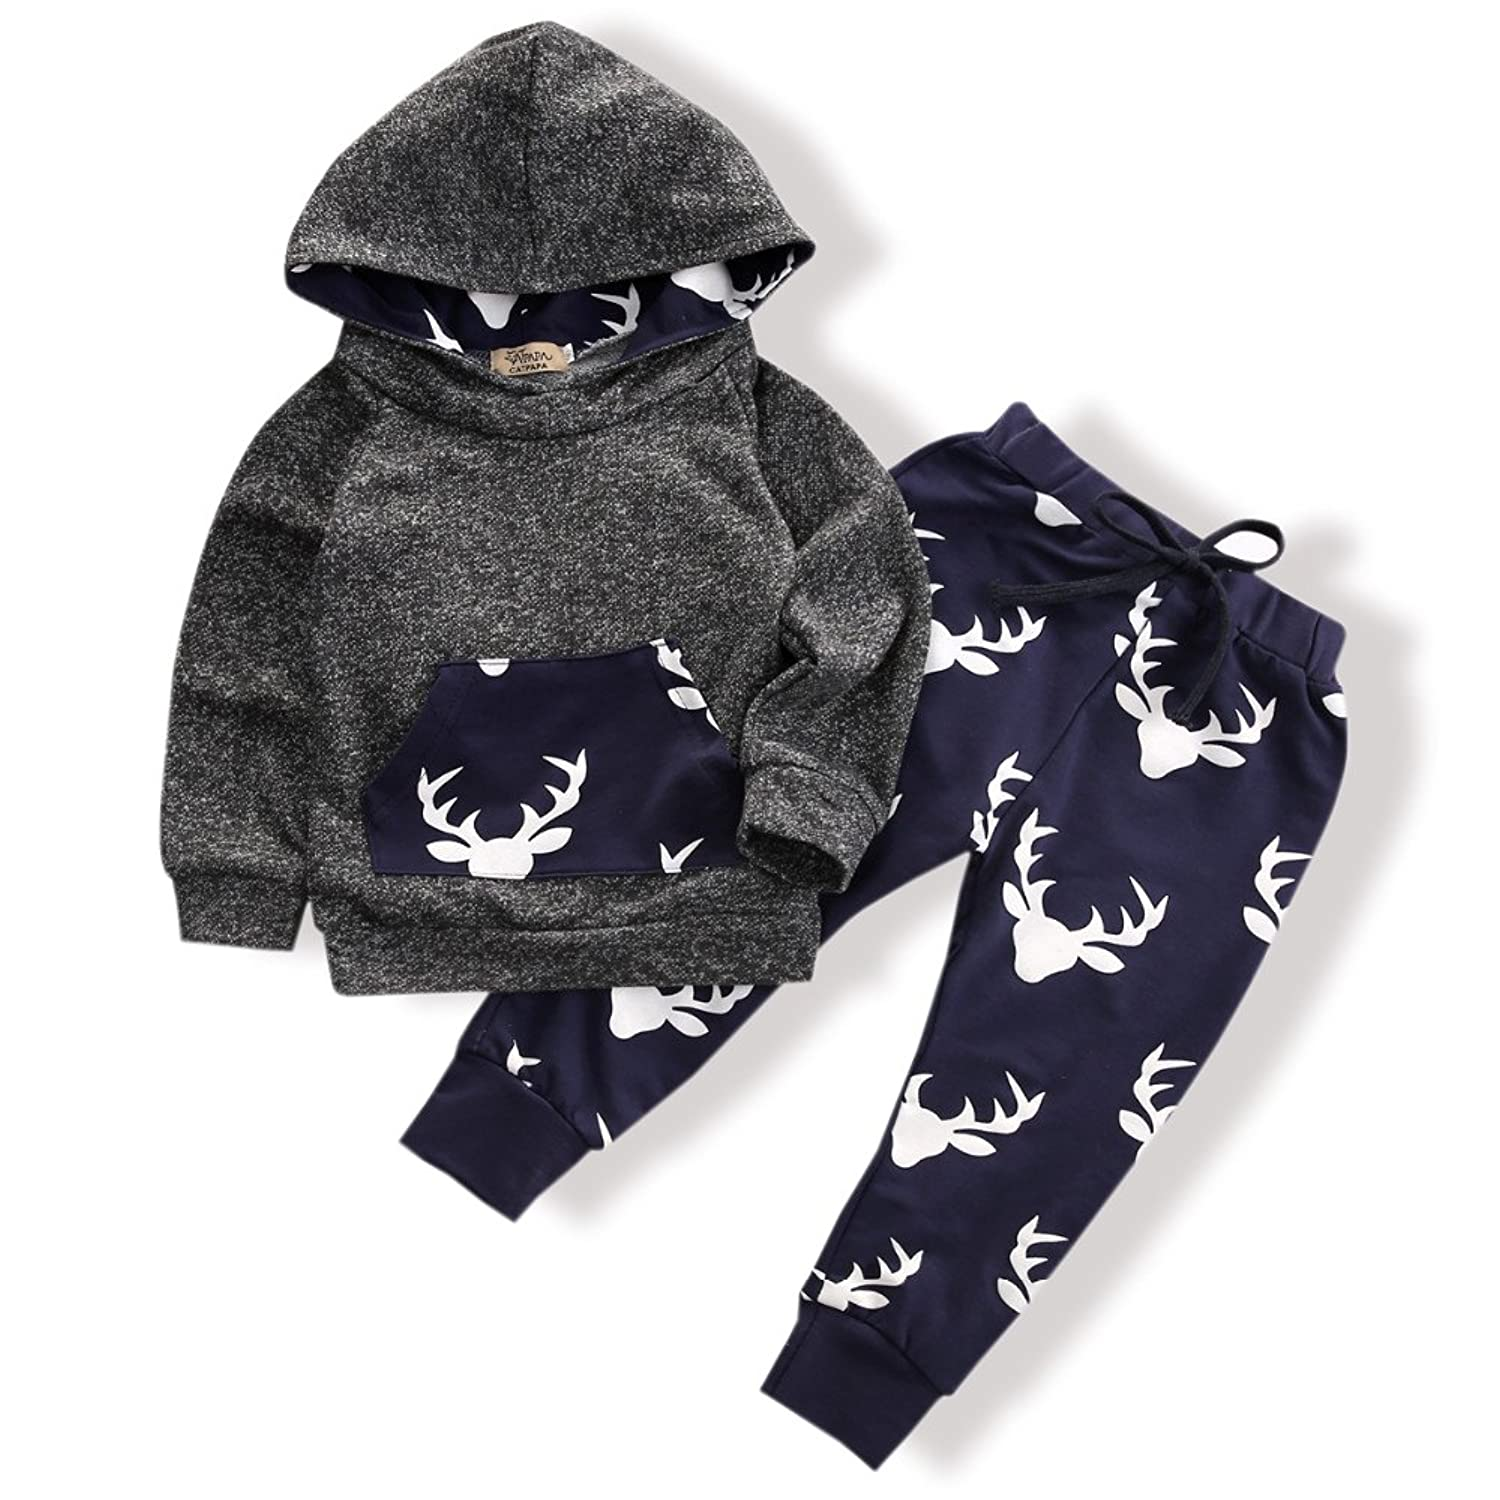 2fce288e26c9 Top 10 wholesale Baby Wearing Hoodie - Chinabrands.com